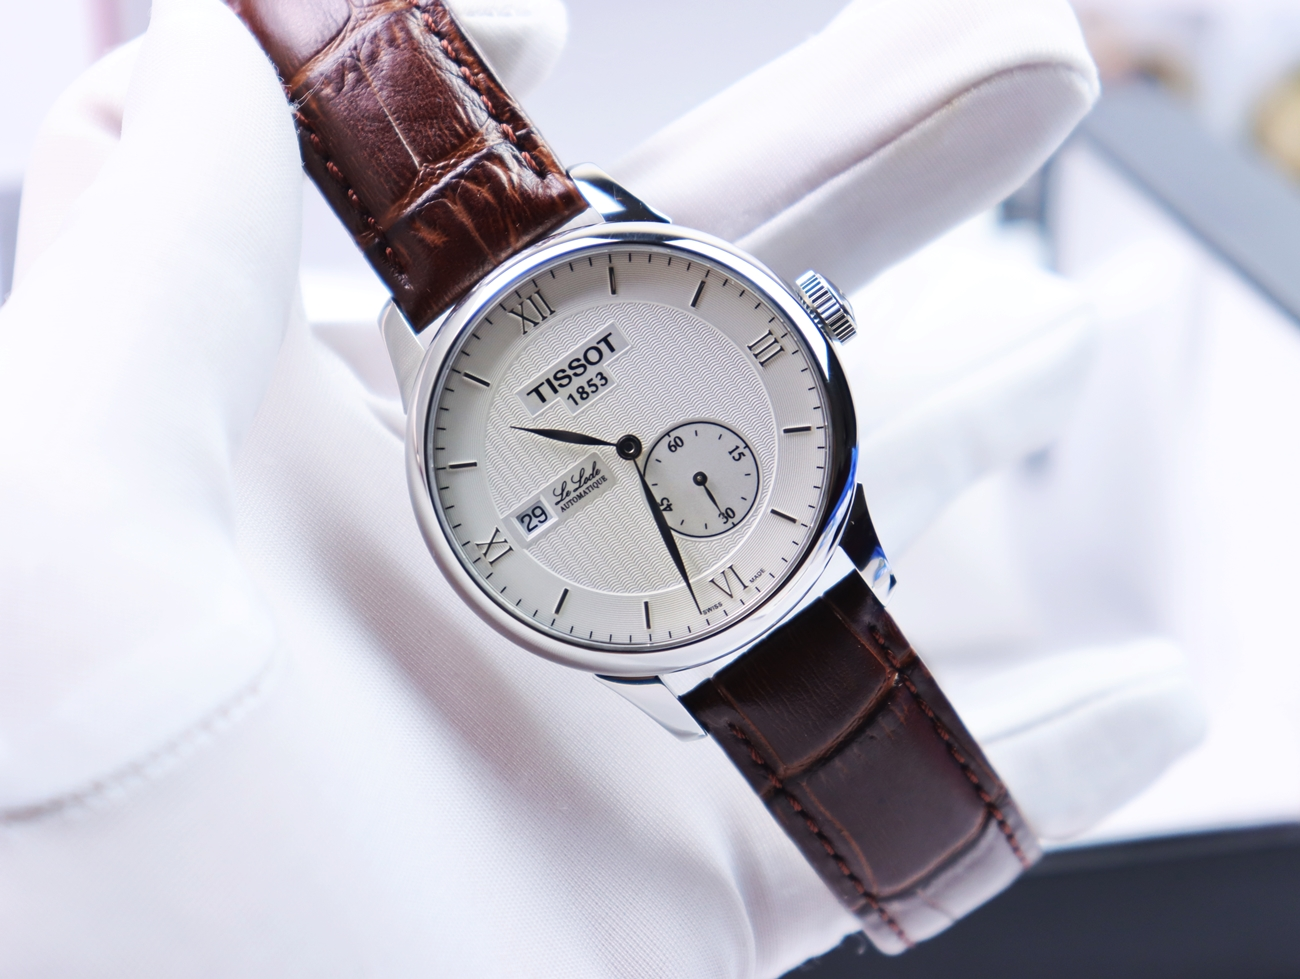 TISSOT Nam Le Locle Automatic Size 39.5mm fullbox, hộp sách hướng dẫn, catalog, Like New